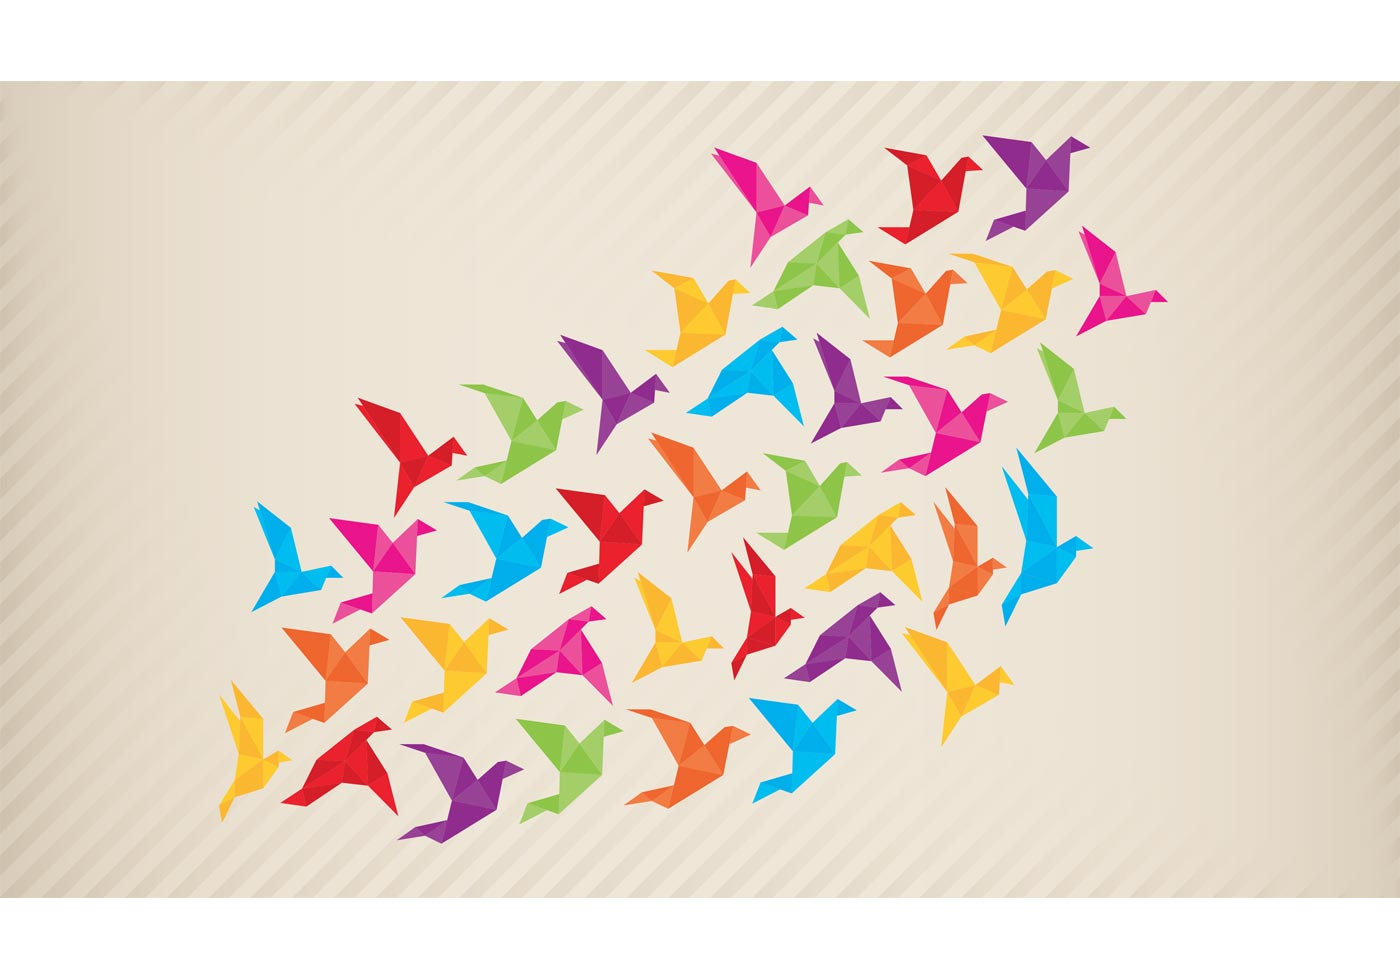 84477 Origami Flock Of Birds Vector